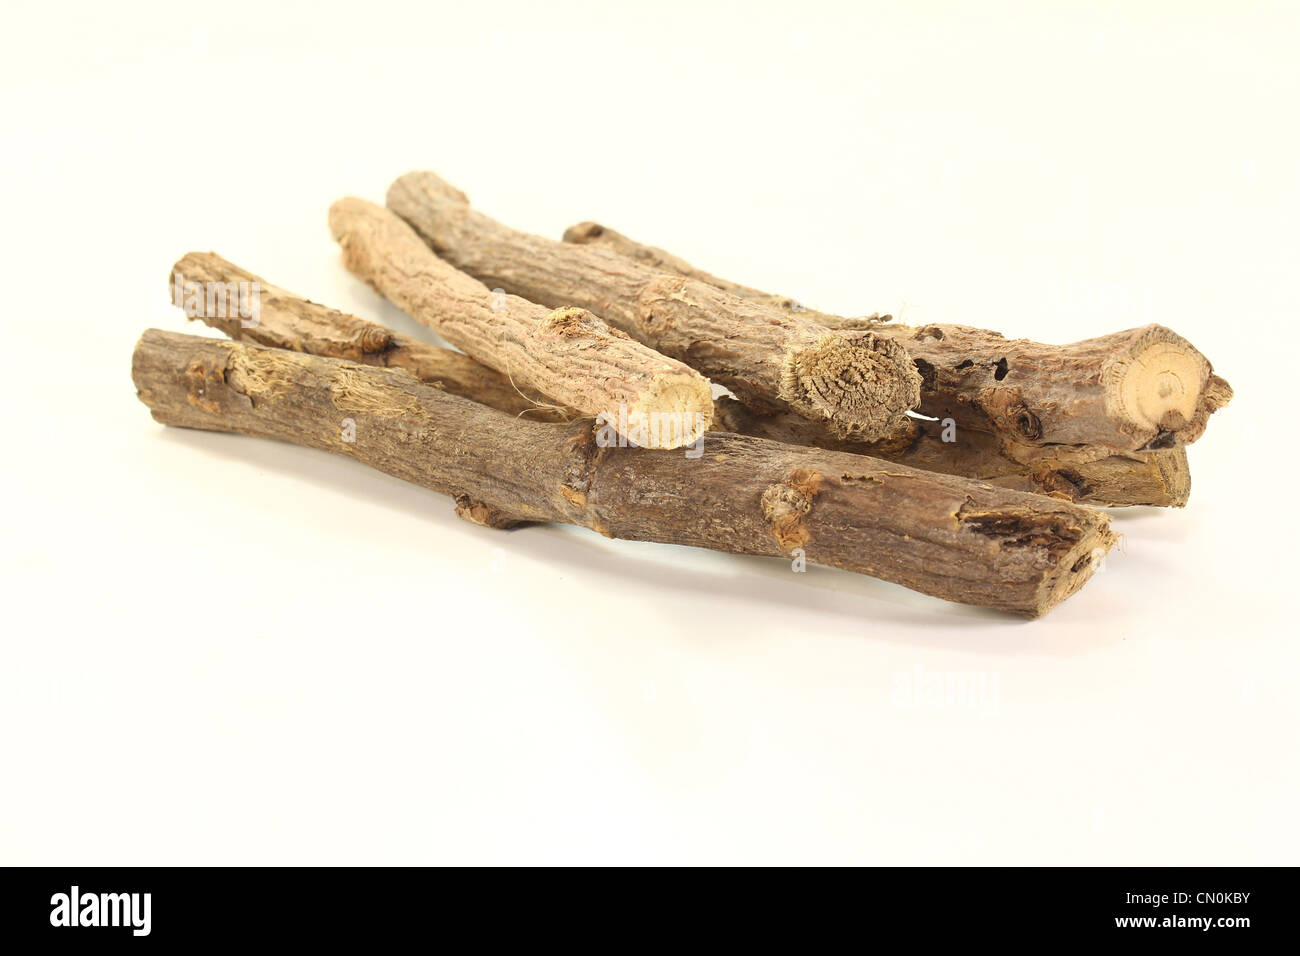 liquorice root with liquorice flavoured on a bright background - Stock Image